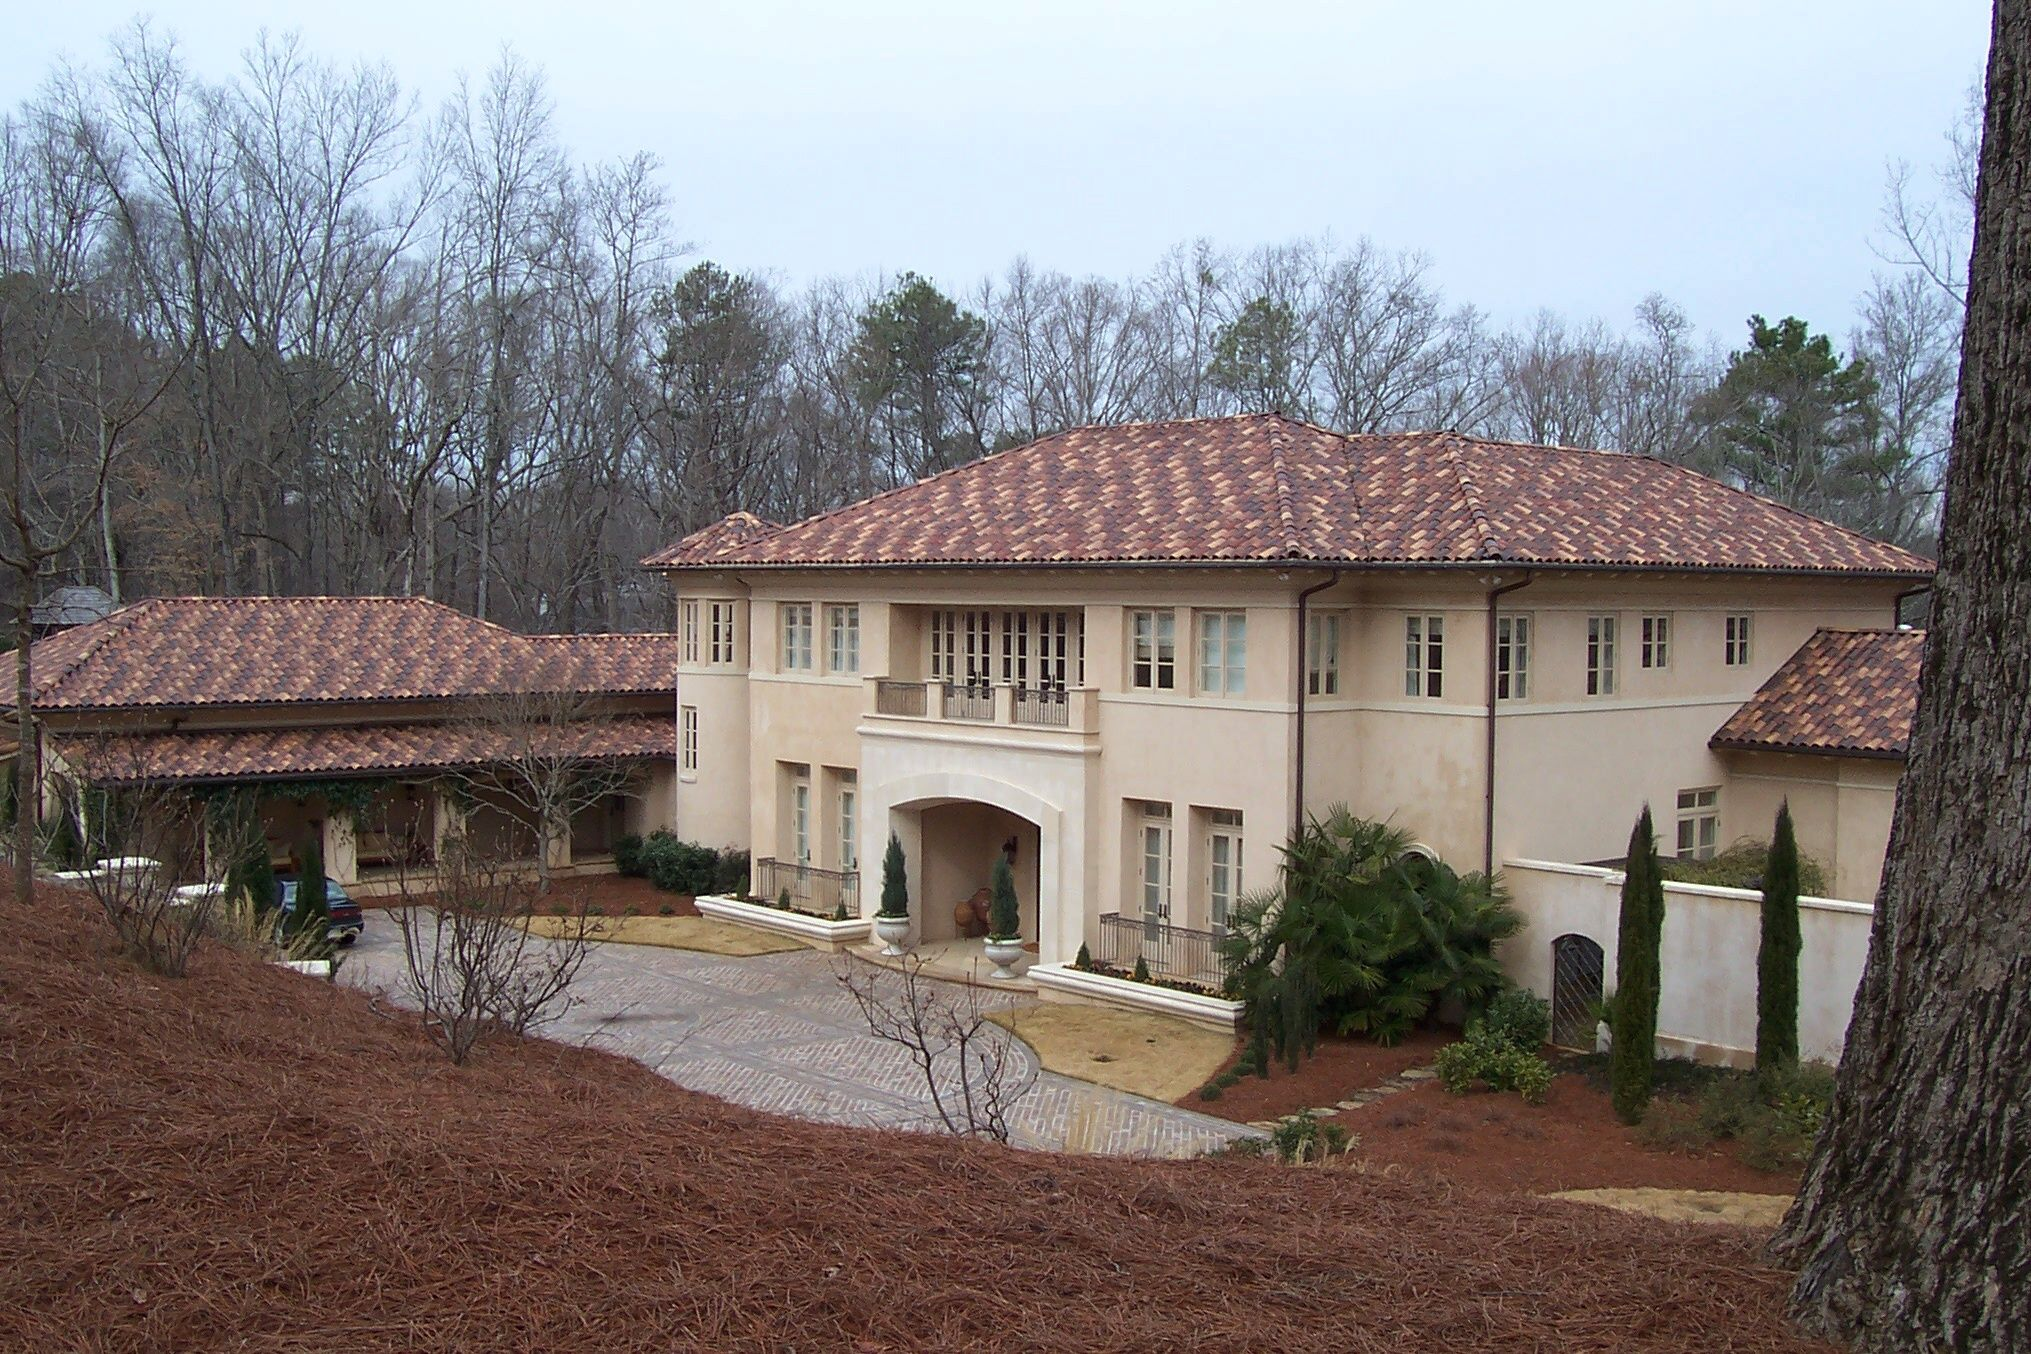 Santafe Clay Spanish S Tile Custom Blend Roofing Options Green Roof Residential Roofing